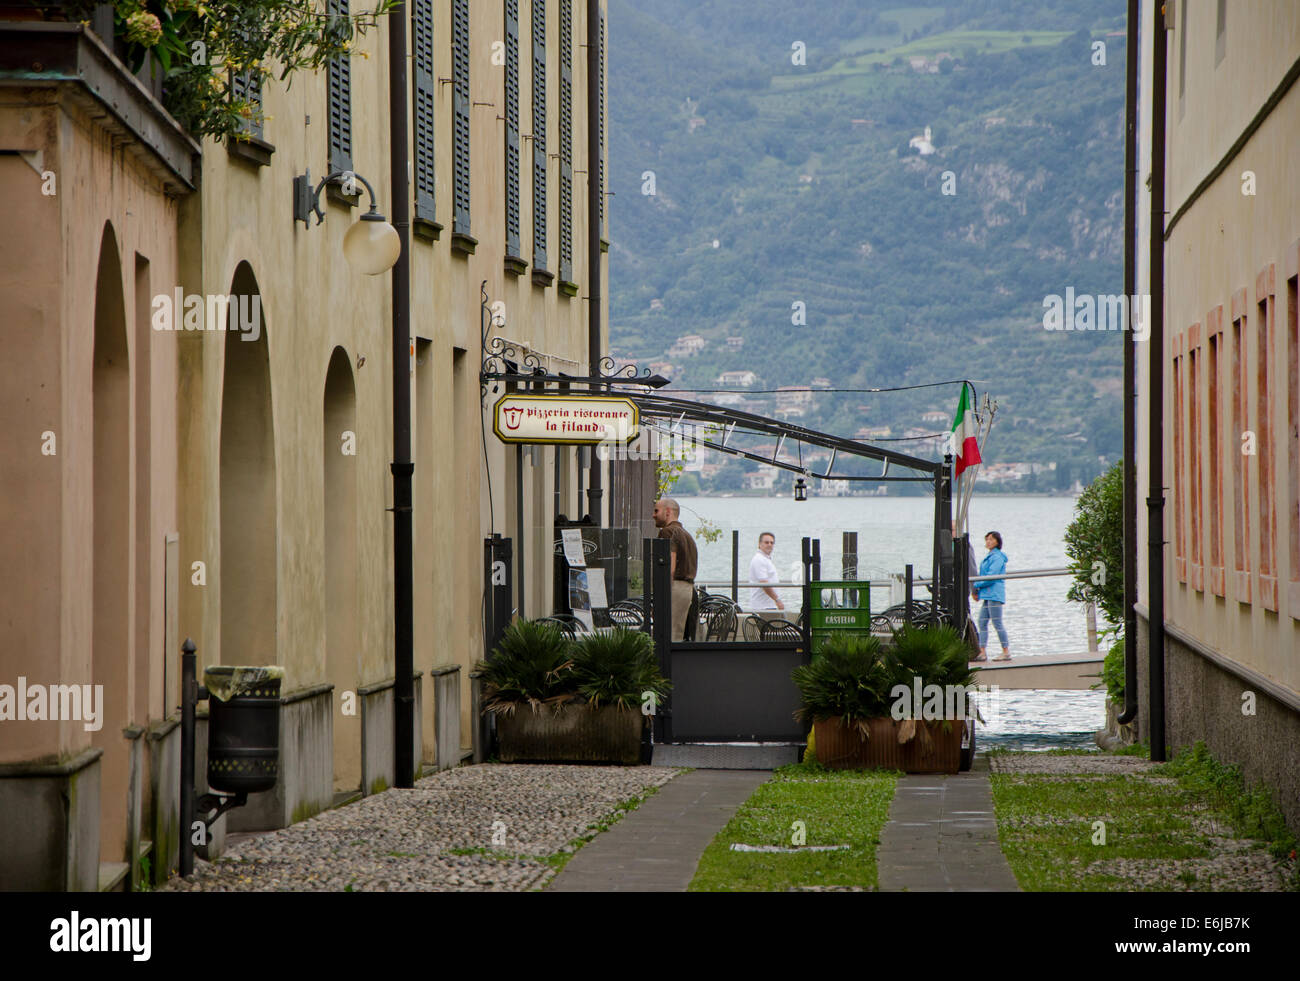 Lake Iseo or Lago d'Iseo or Sebino with a pizzeria restaurant at Iseo, Lombardy region. Northern Italy. - Stock Image